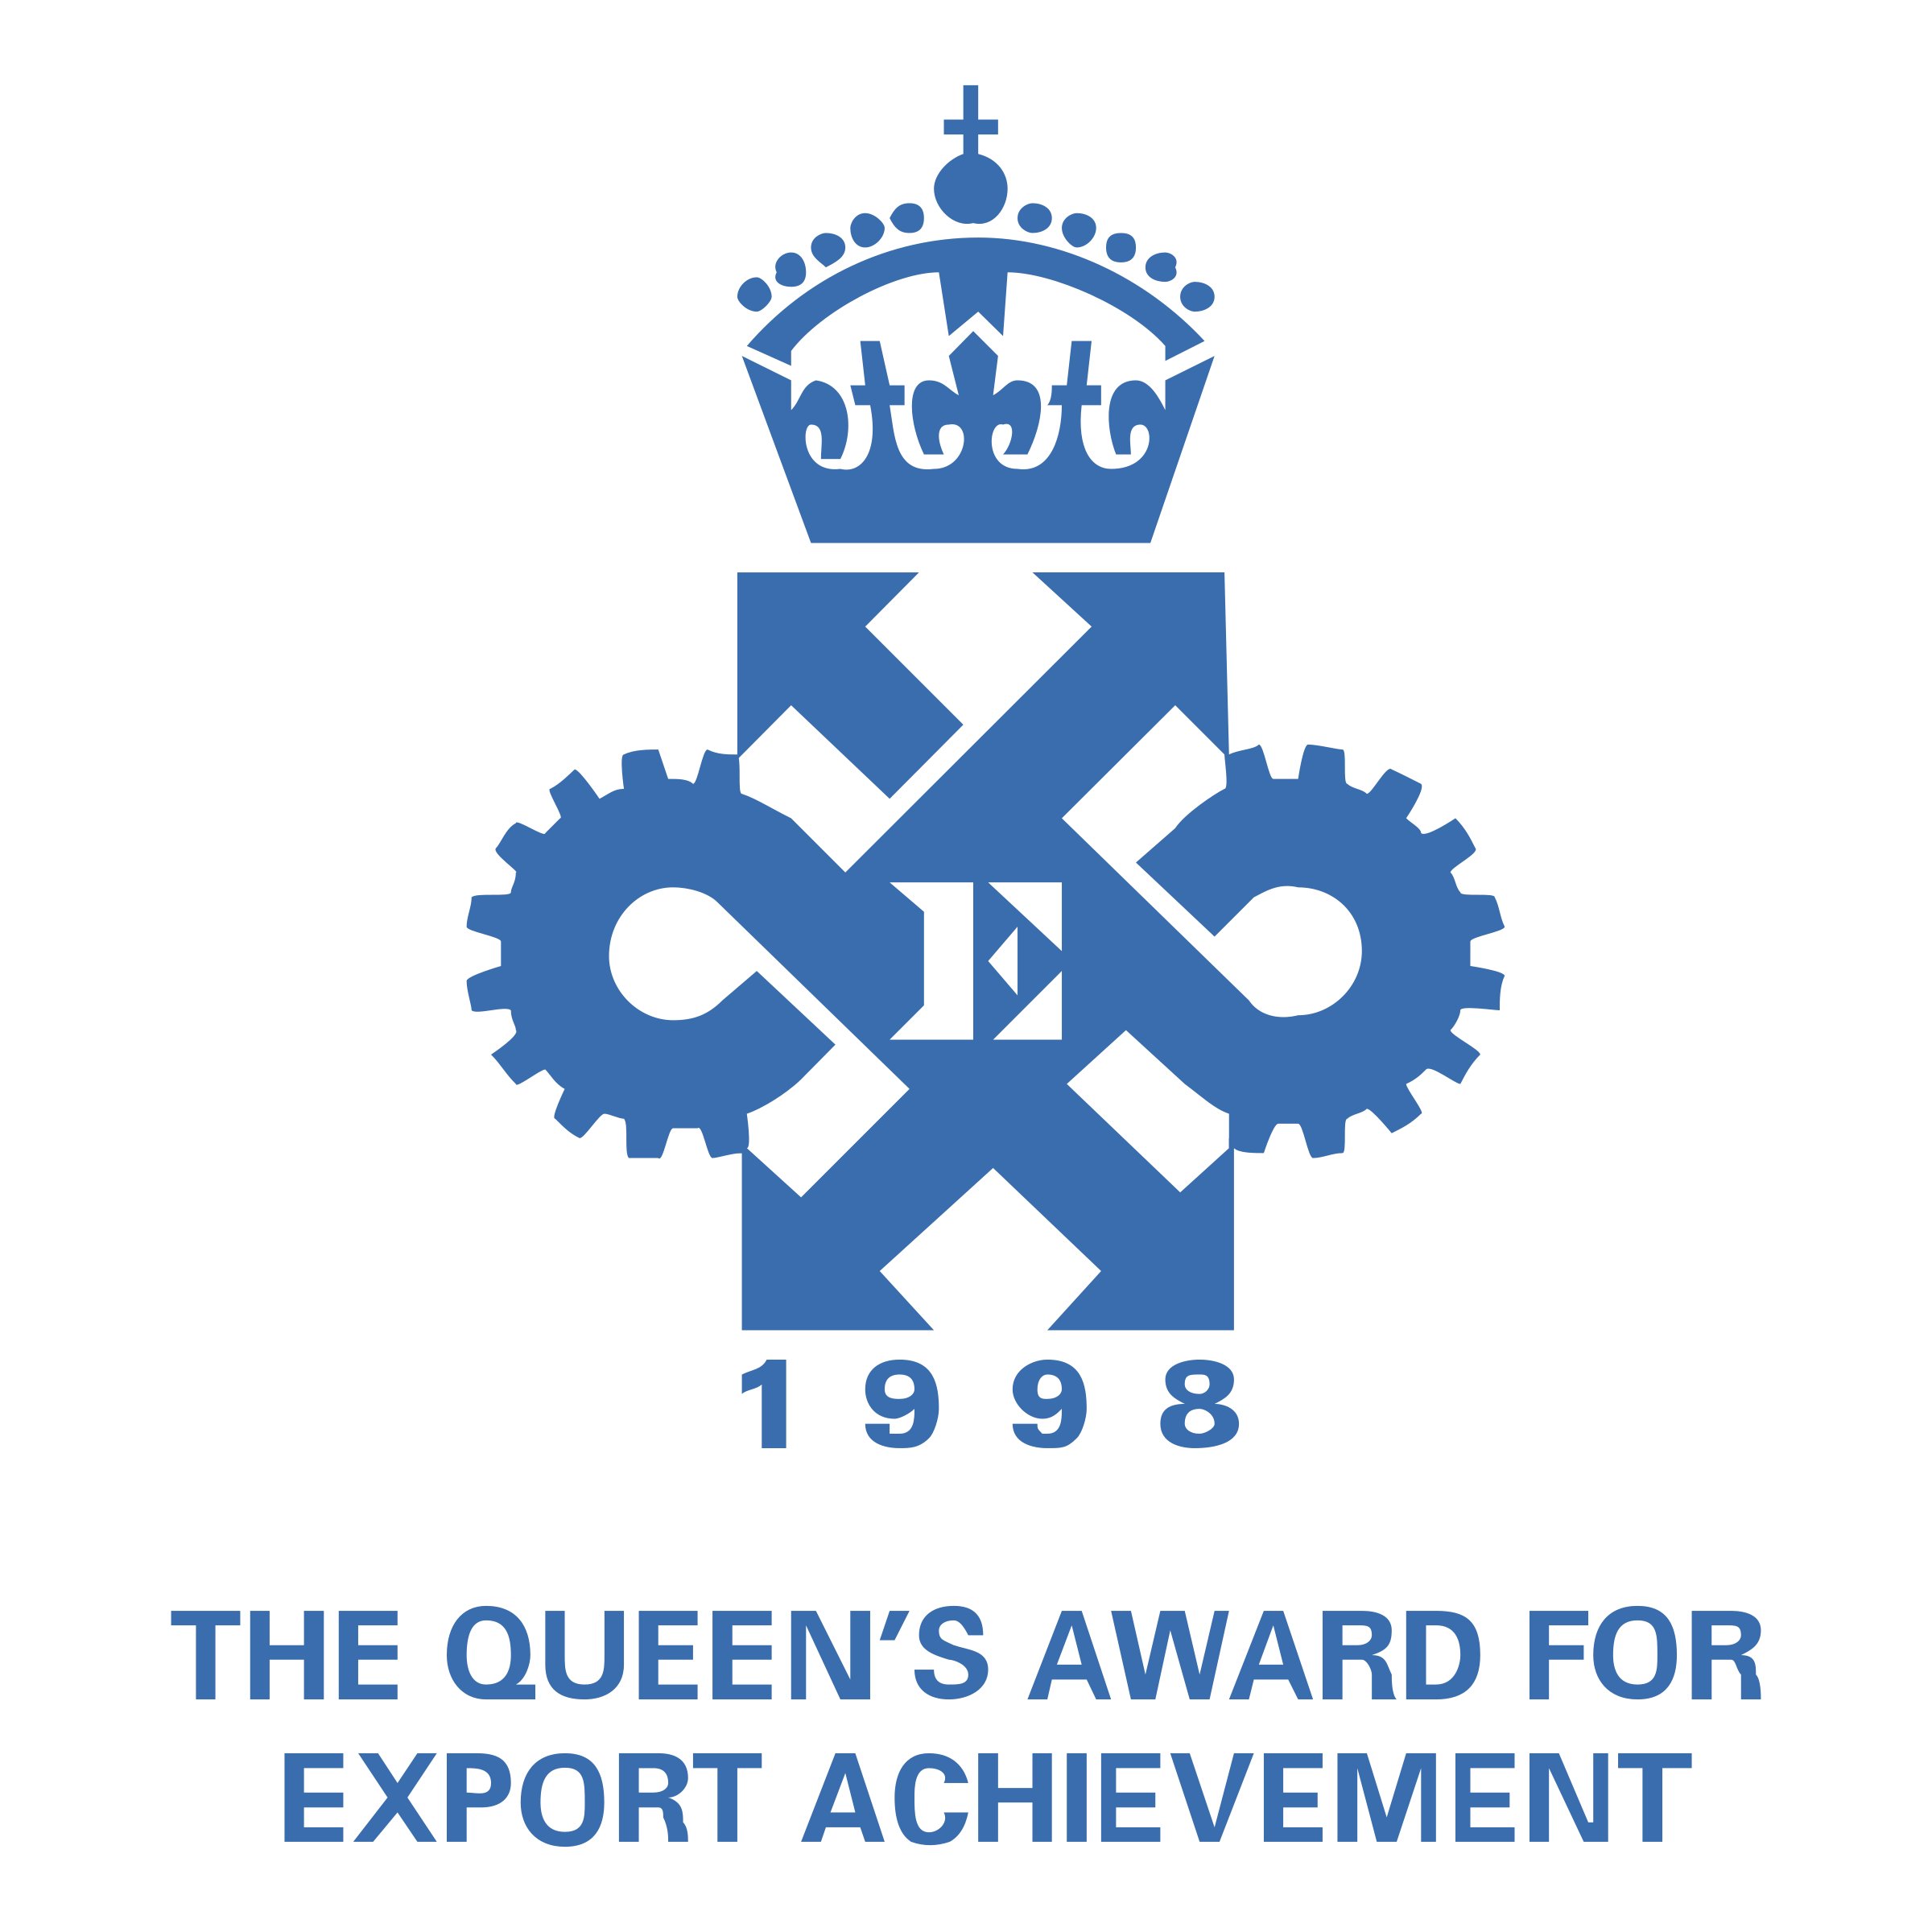 Award transparent achievement. The queen s for